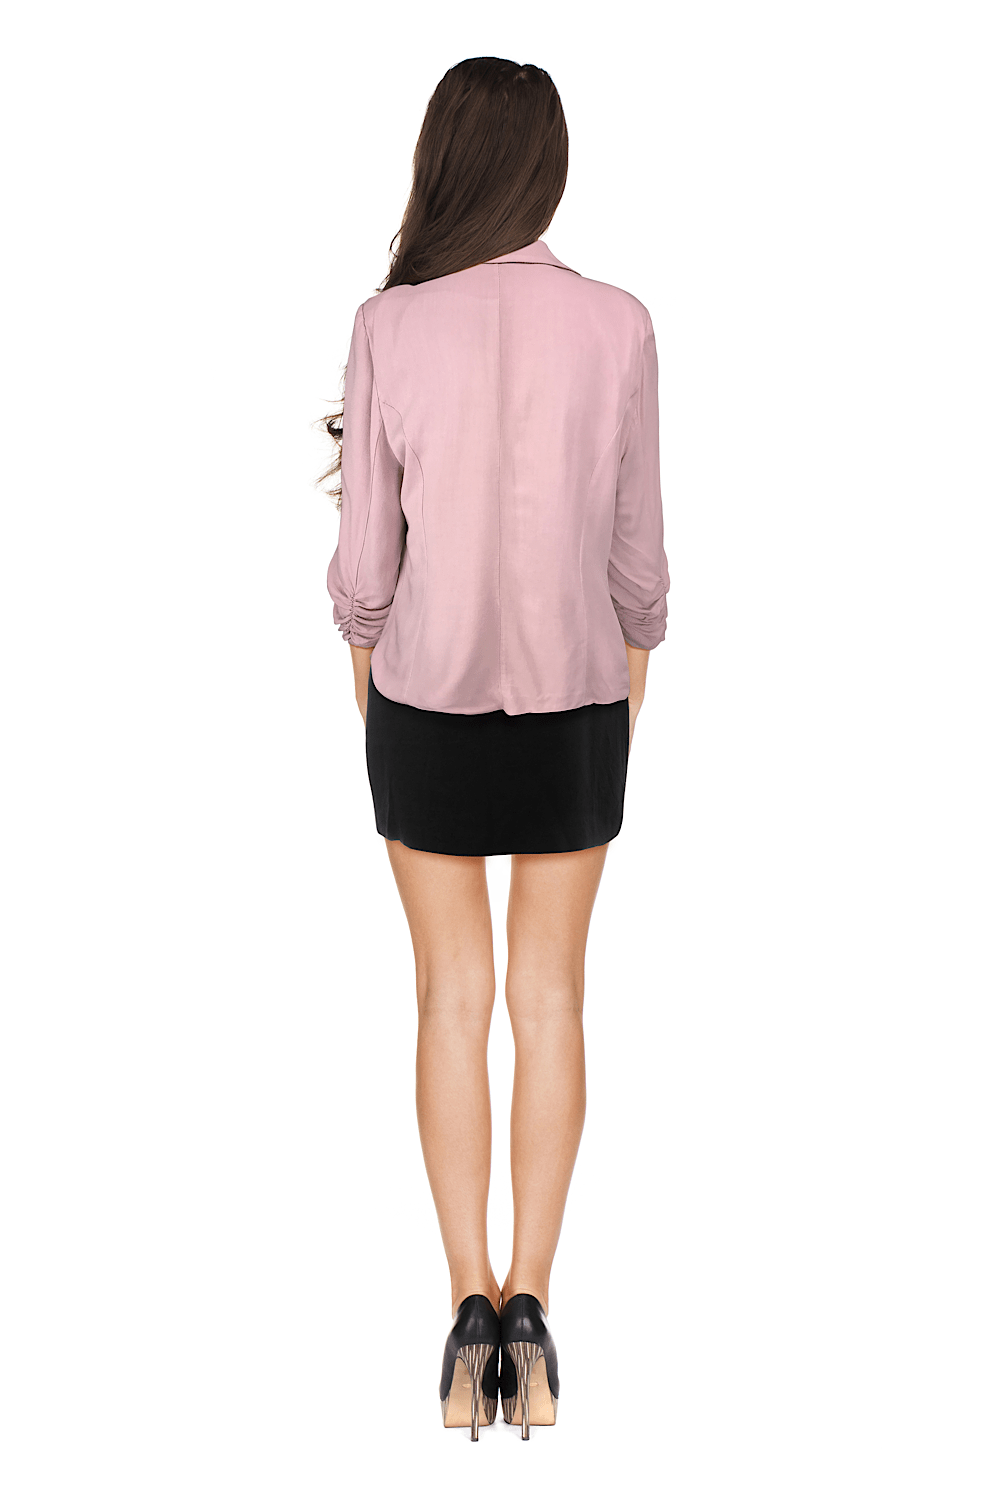 Soft Pink Summer Blazer With Ruched Sleeves